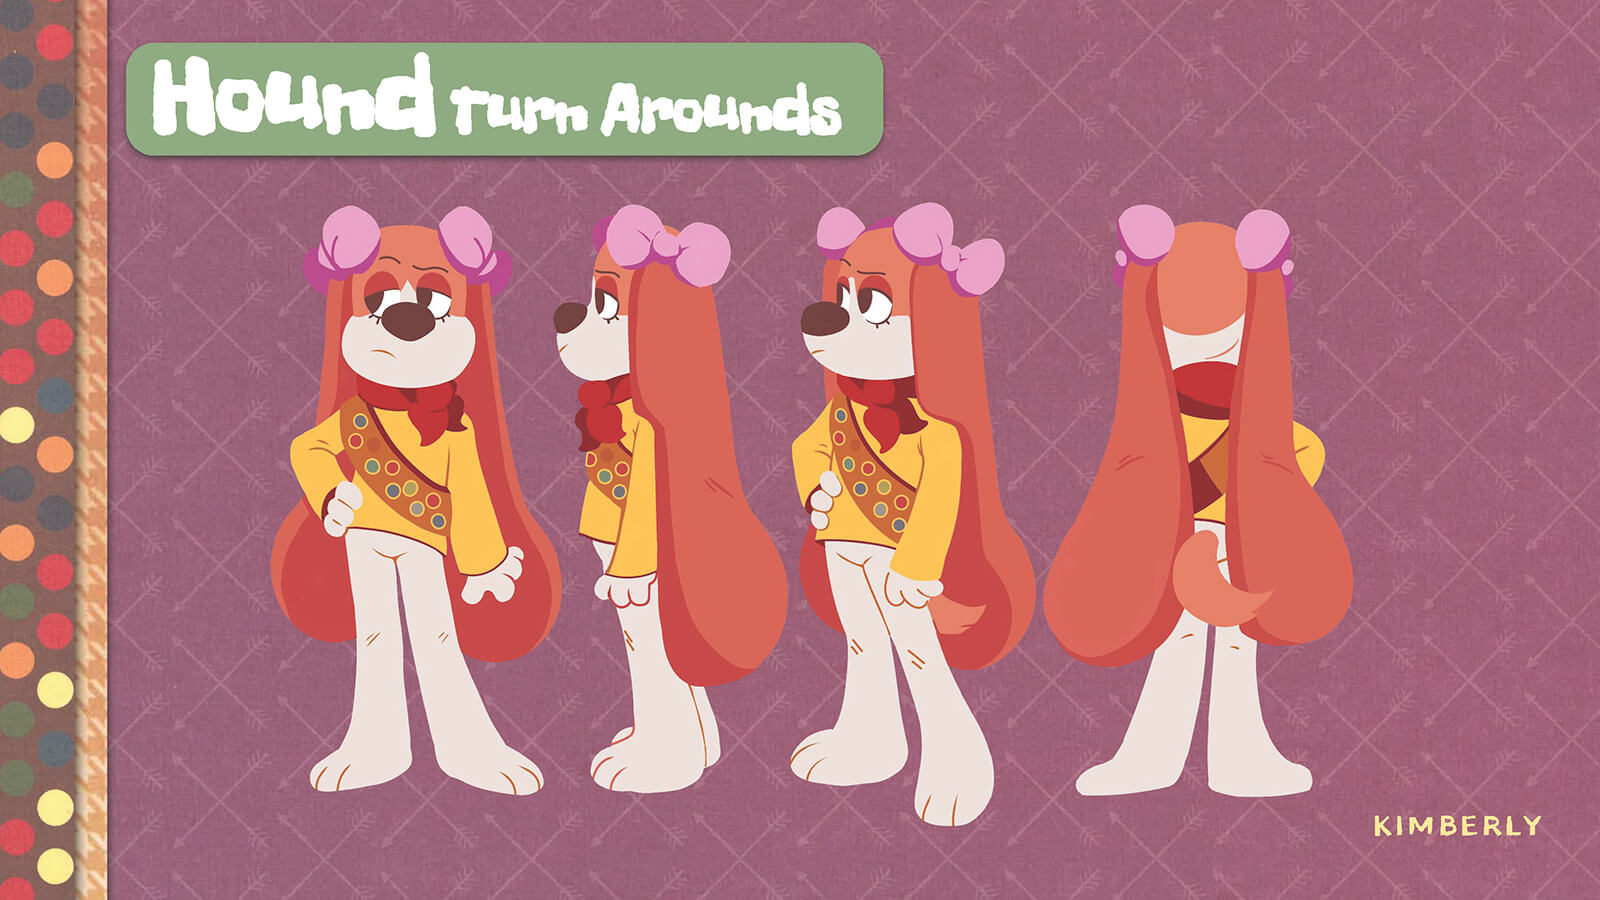 Turnaround of the character Hound.